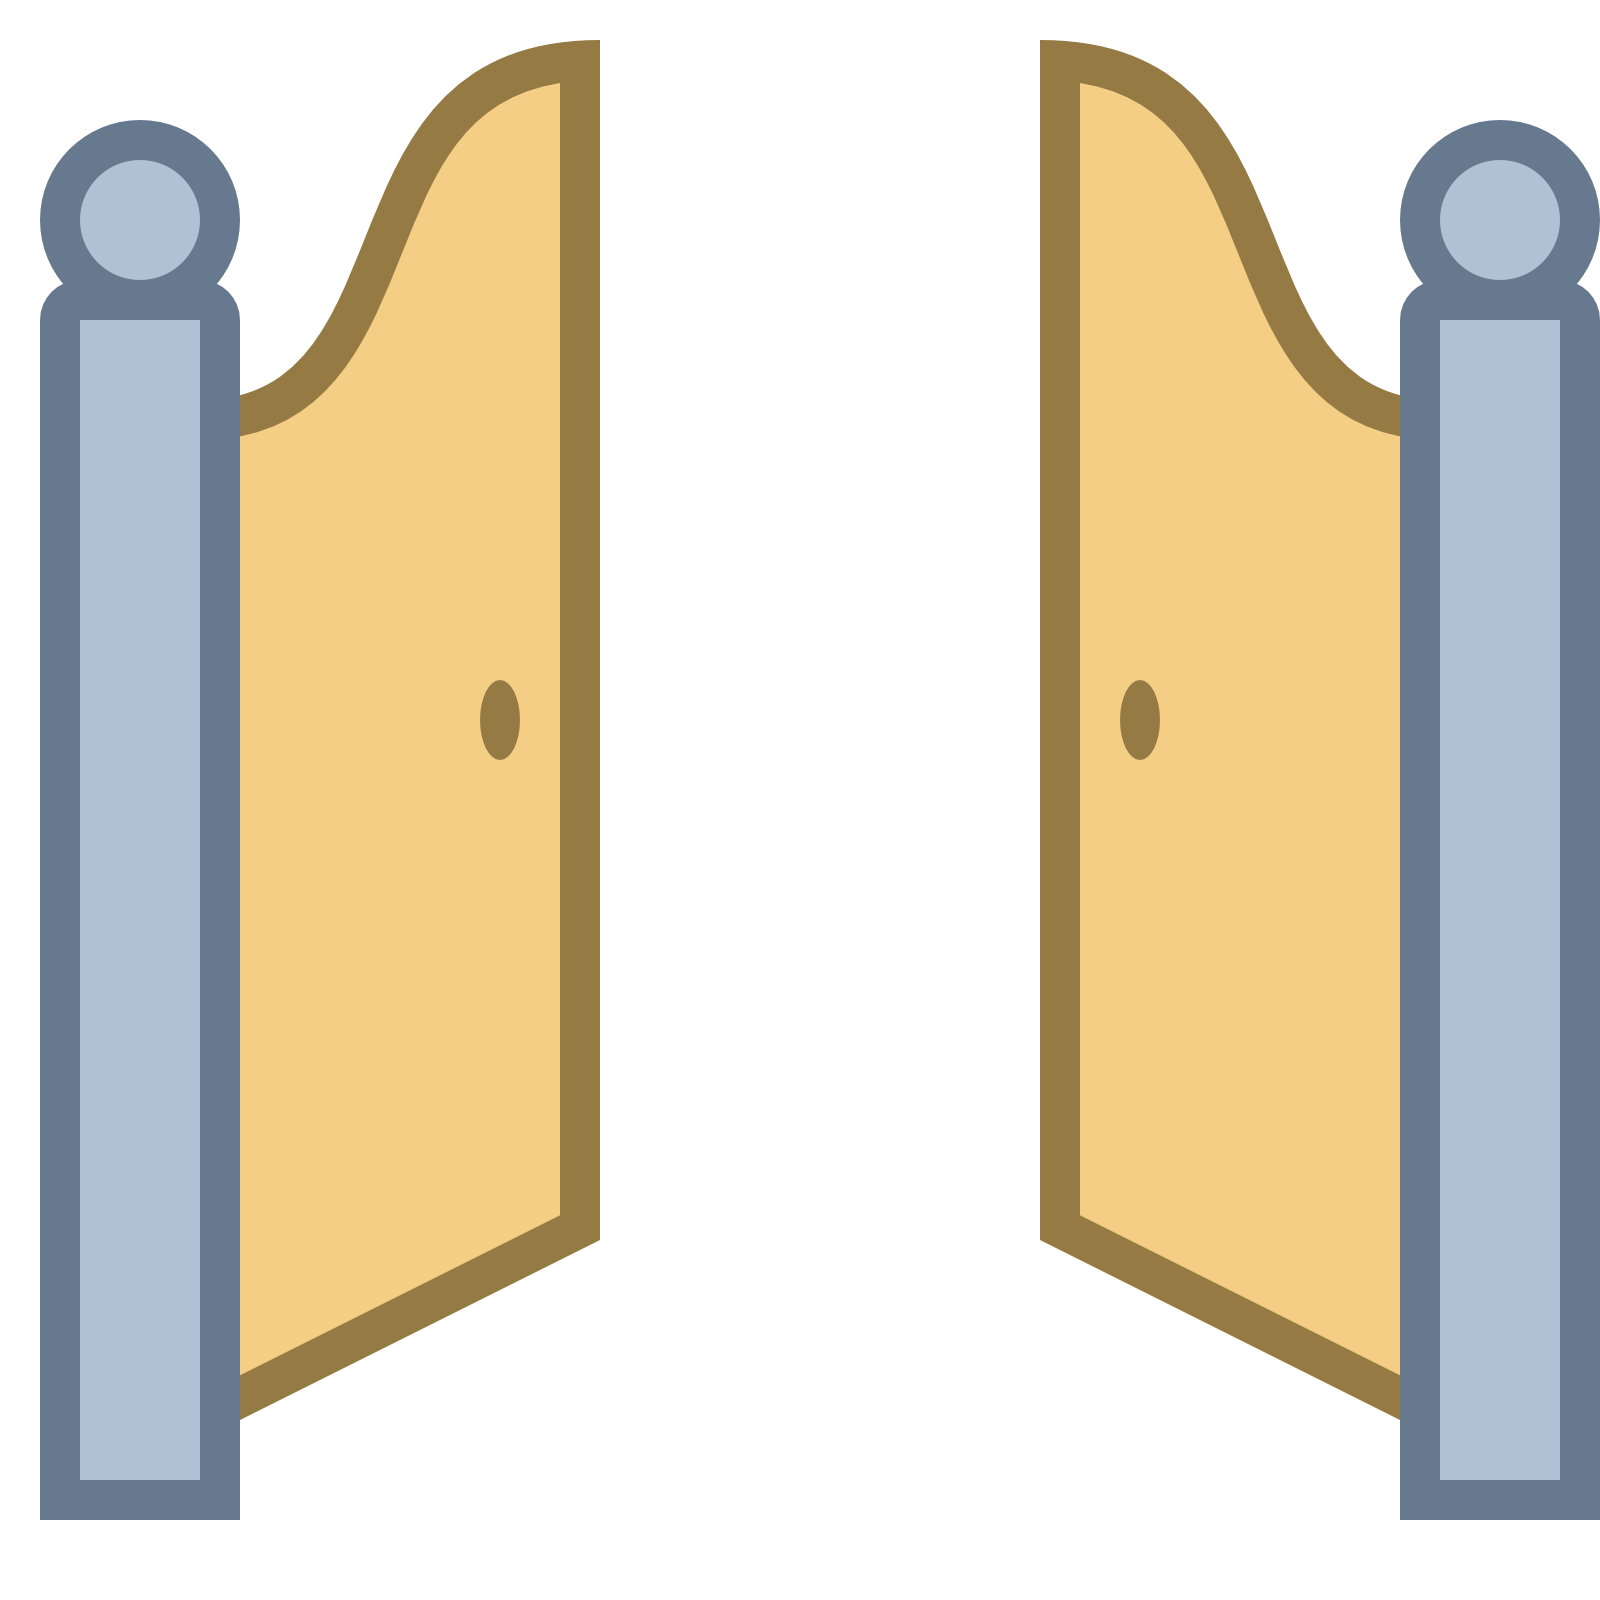 Open gate png. Entry cliparthot clipart of